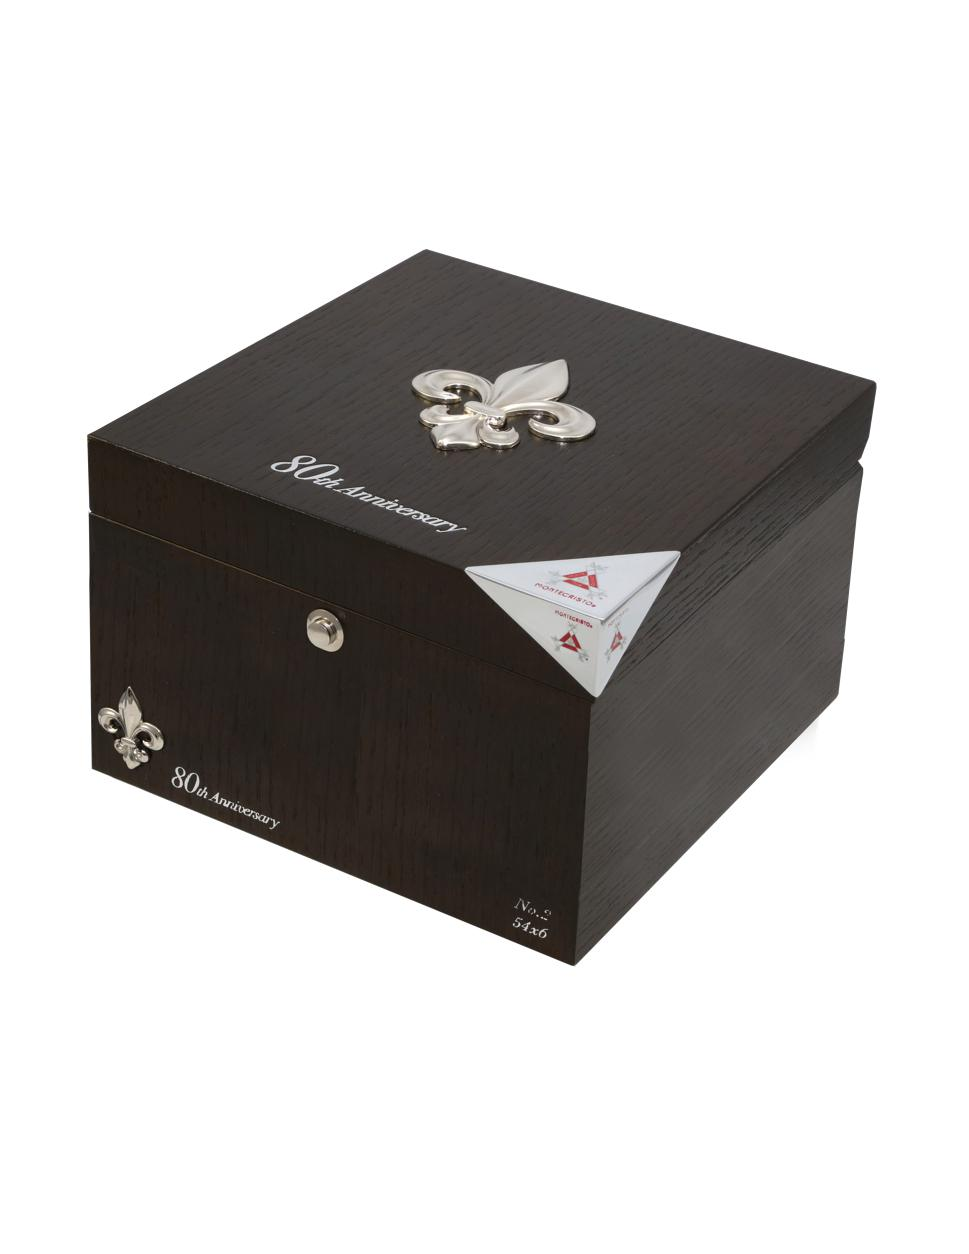 Montecristo_80th_Anniversary_Box_Closed_humidor